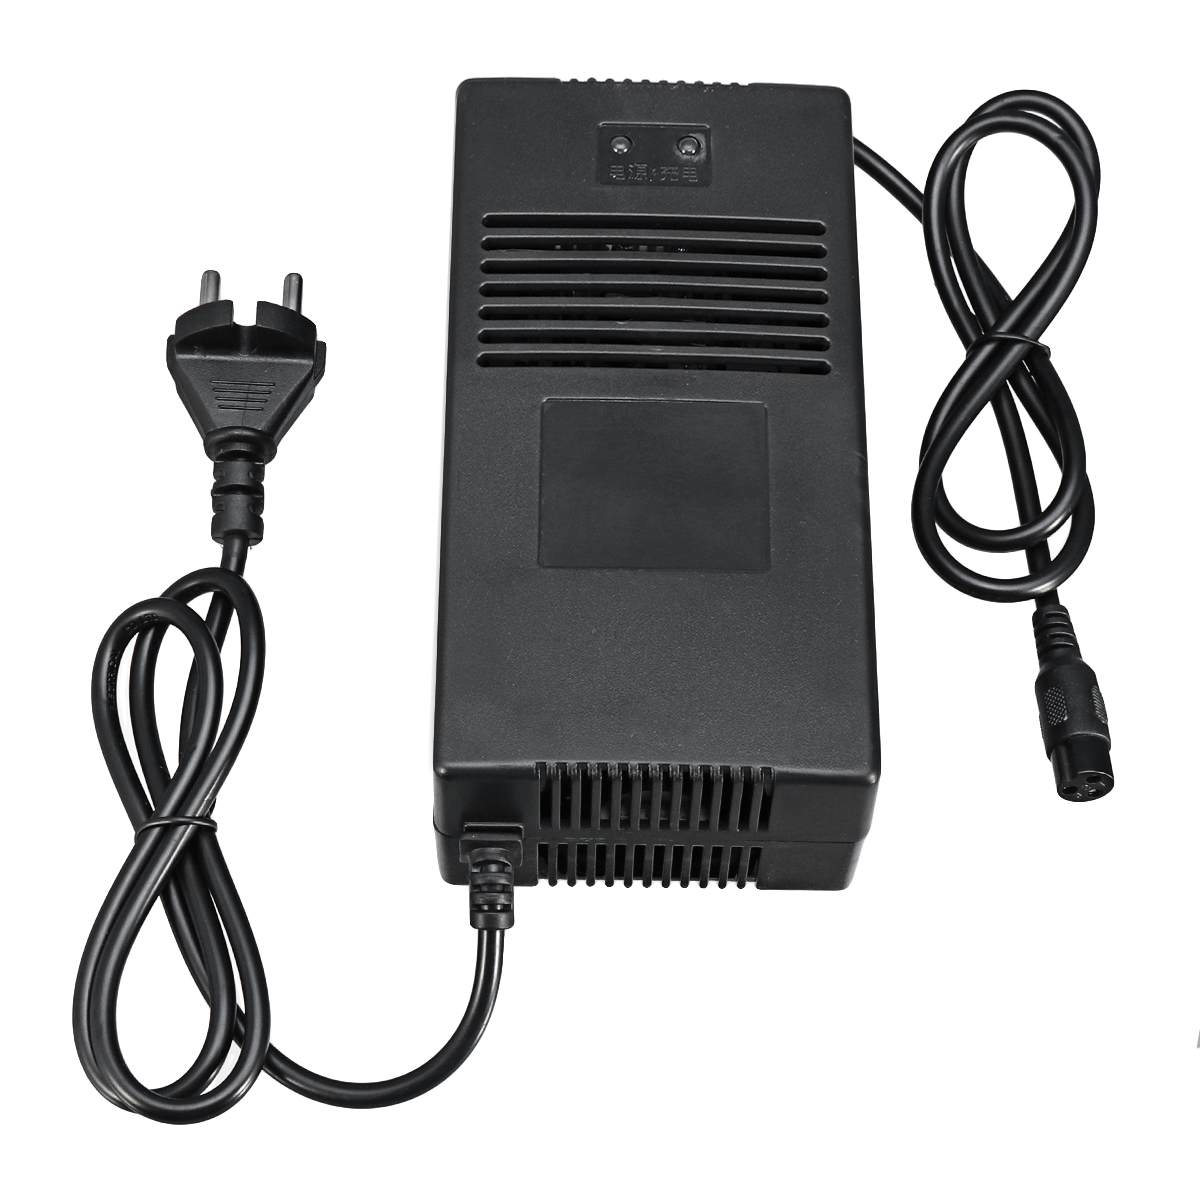 48V Lithium Li ion Battery Charger 54.6V 4A For Electric Bike Bicycle Scooter Quick Charge Function